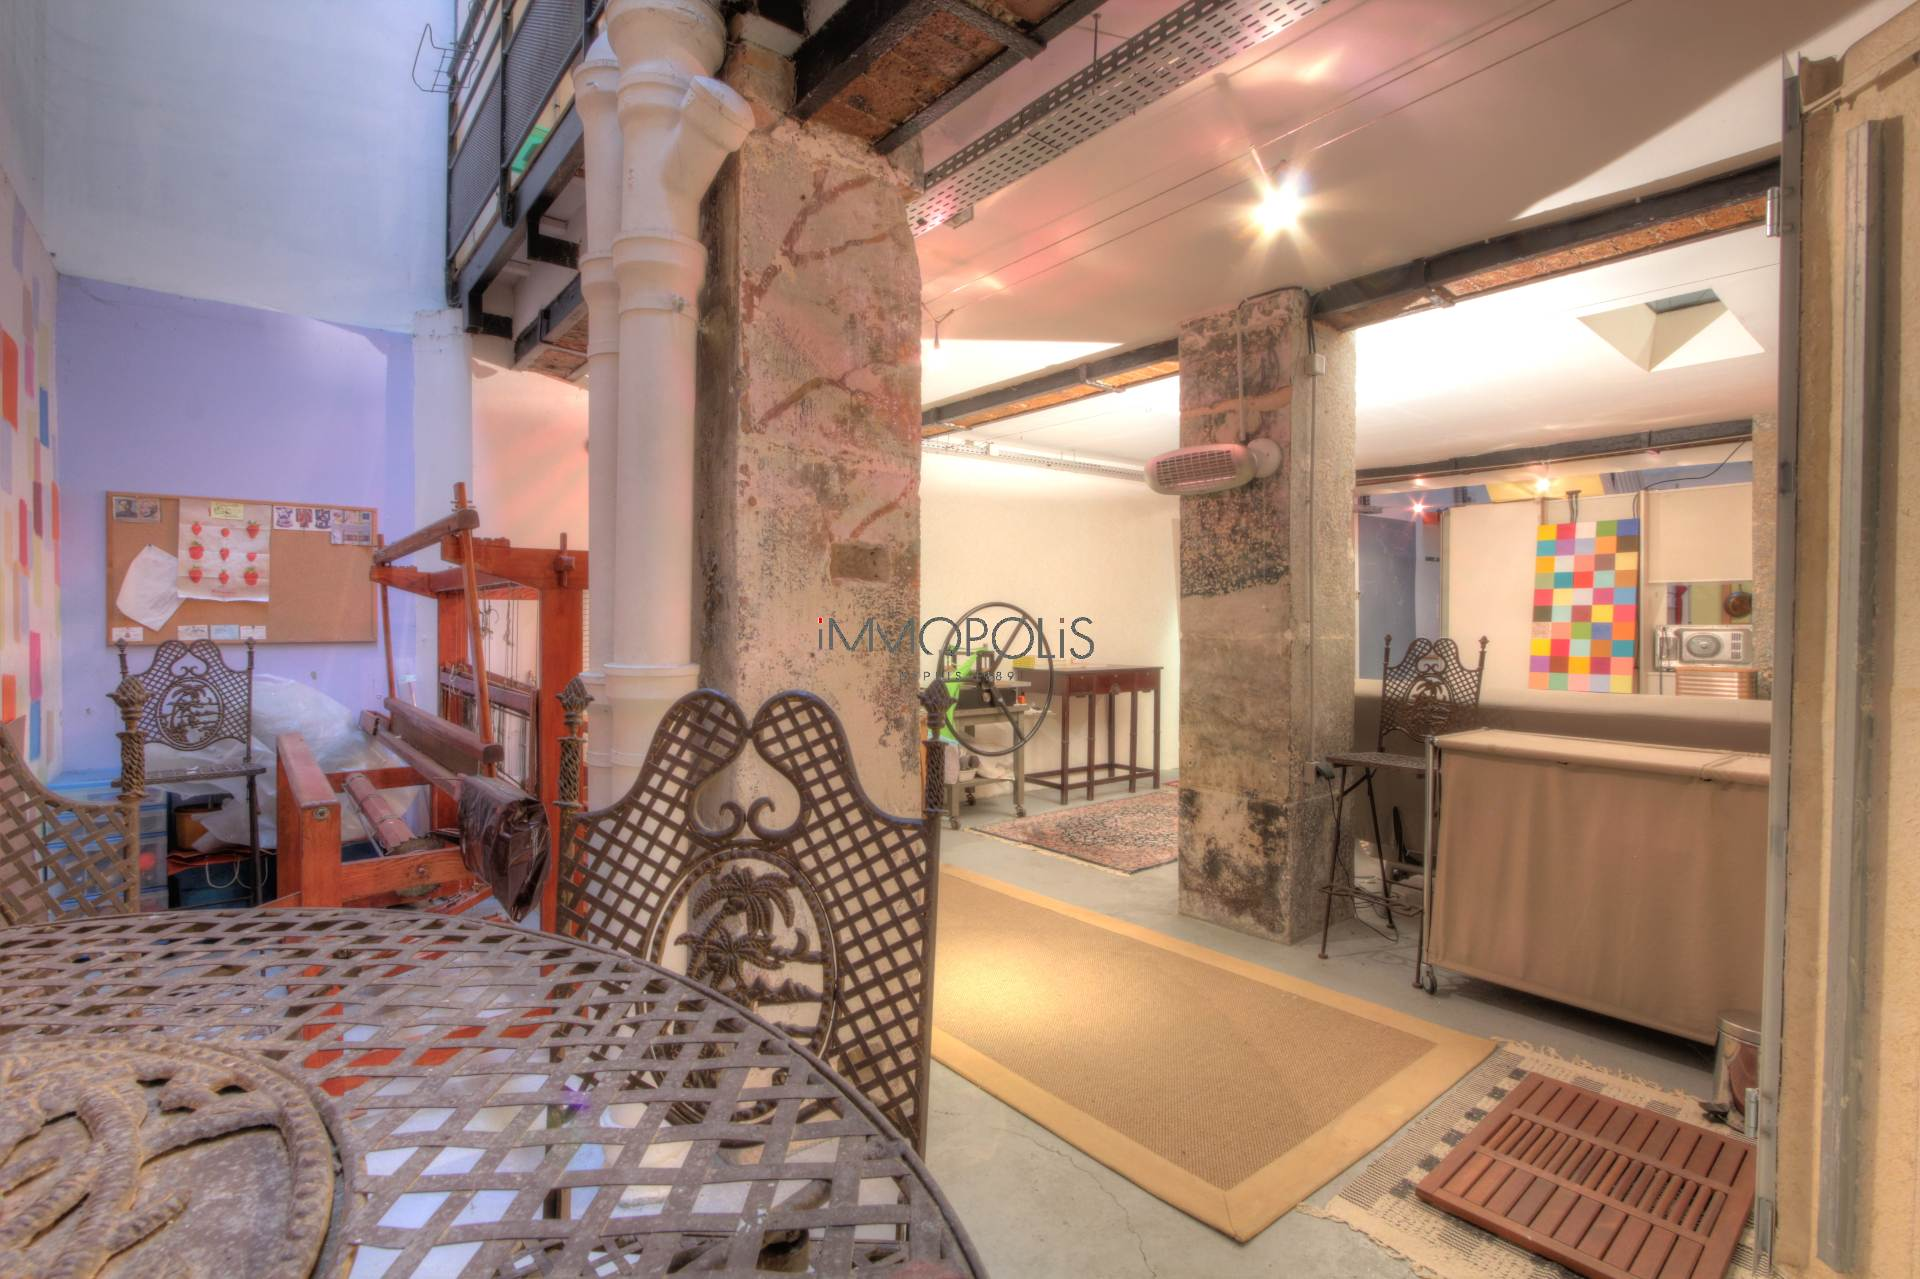 Totally atypical LOFT / ARTIST WORKSHOP, in OPEN-SPACE on three levels with TWO GLASS ROOMS overlooking a quiet courtyard! 7